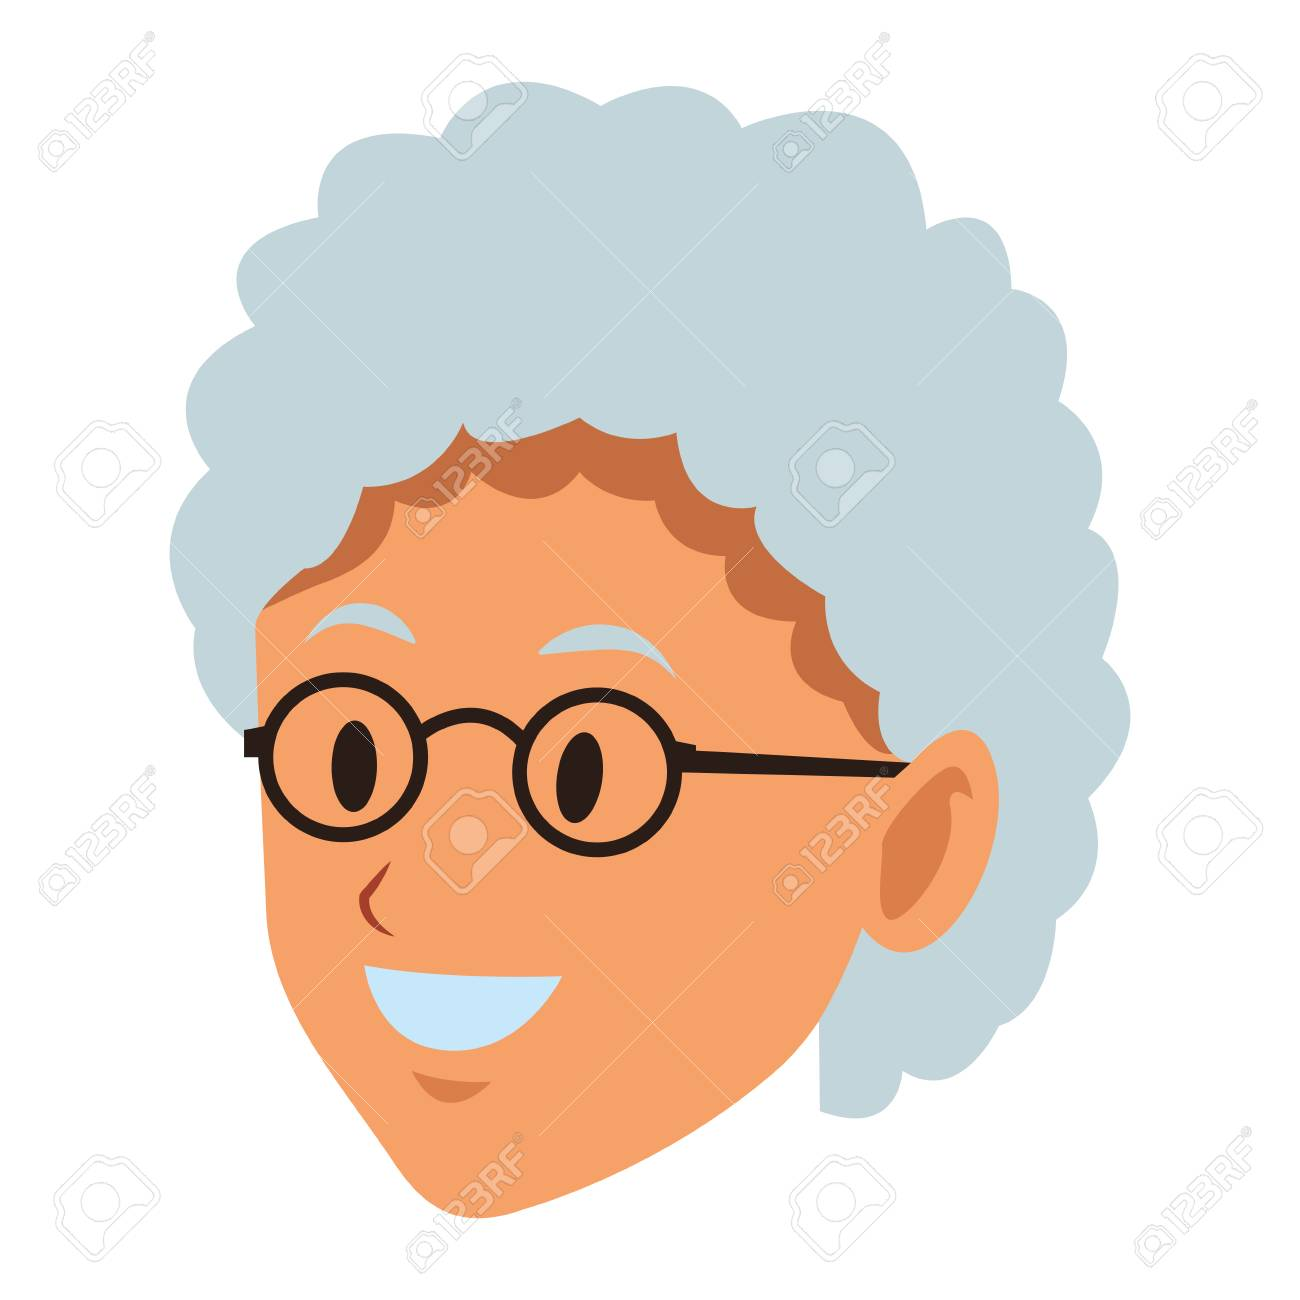 Old Woman Face With Glasses Short Hair Smiling Vector Illustration